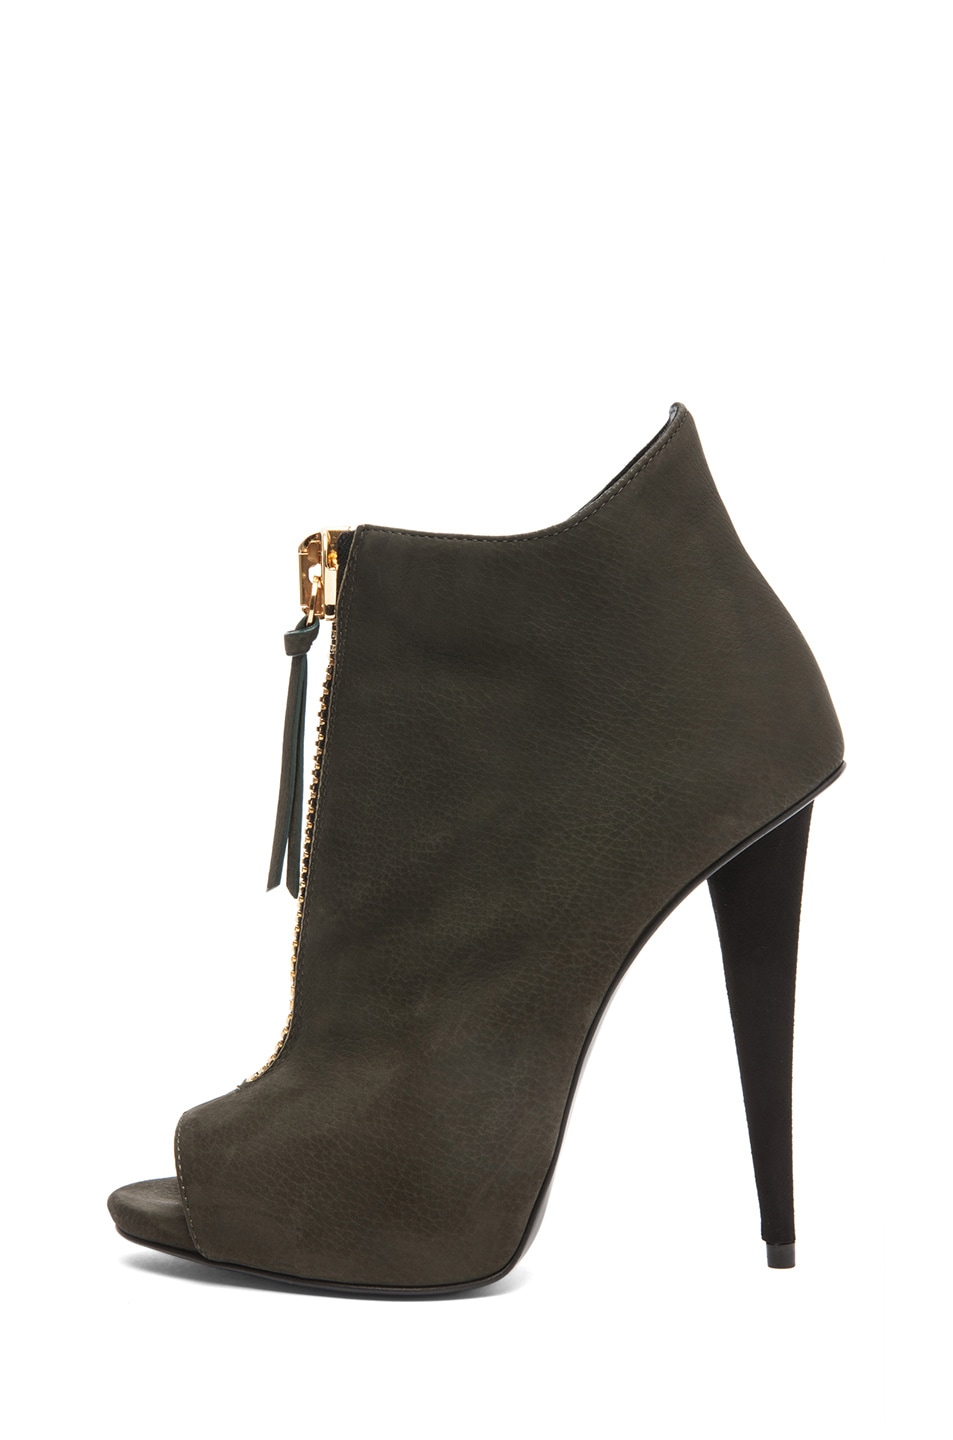 Image 1 of Giuseppe Zanotti Suede Zip Up Ankle Boot in Olive